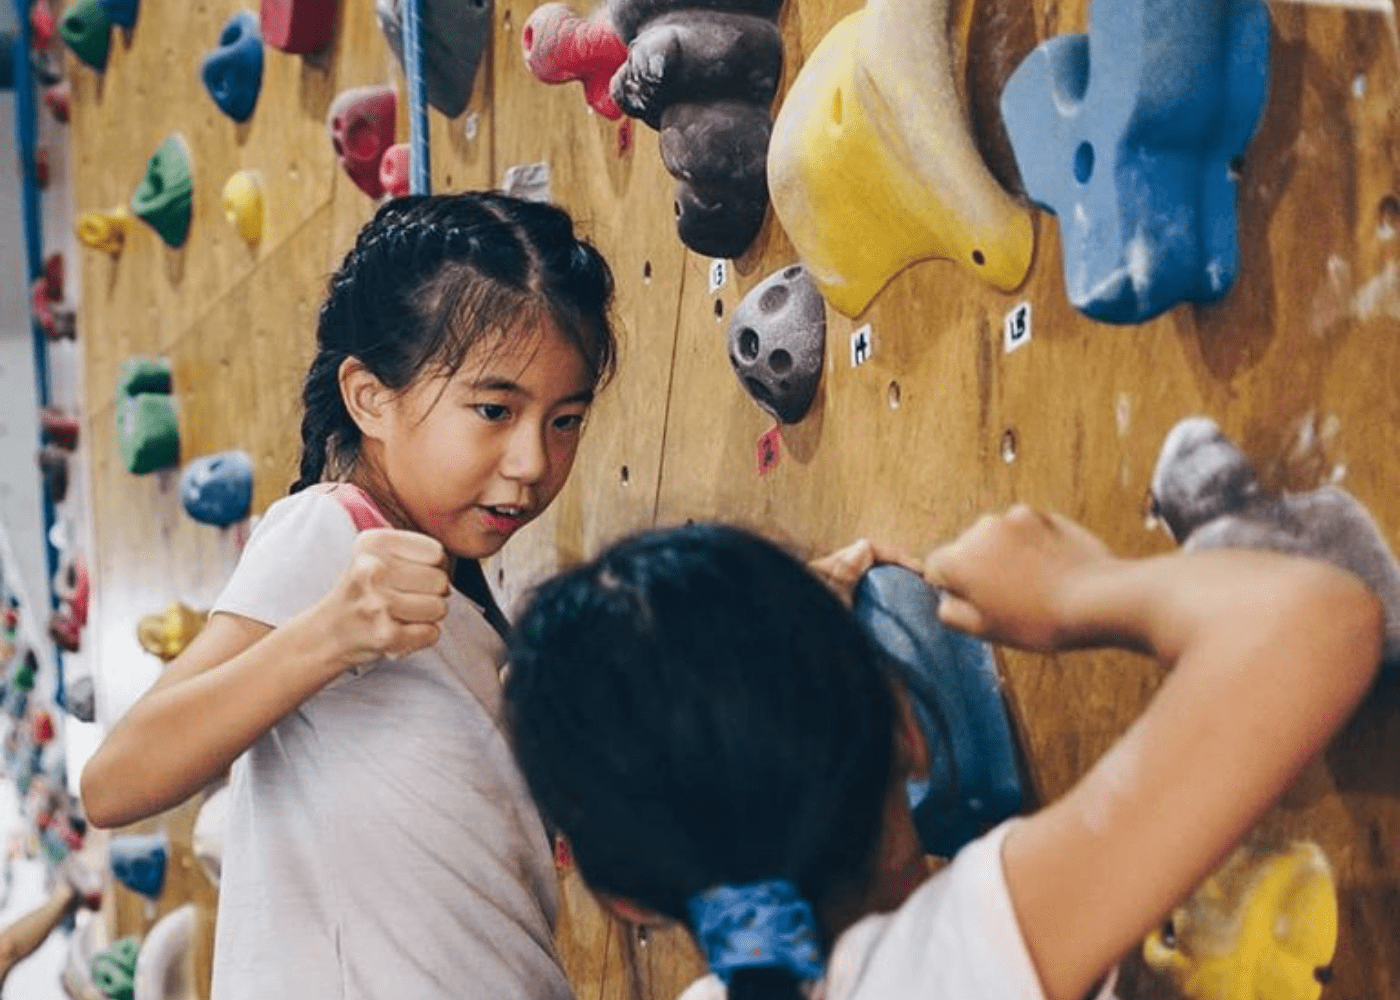 Kinetics Climbing   Adventure sports for kids in Singapore